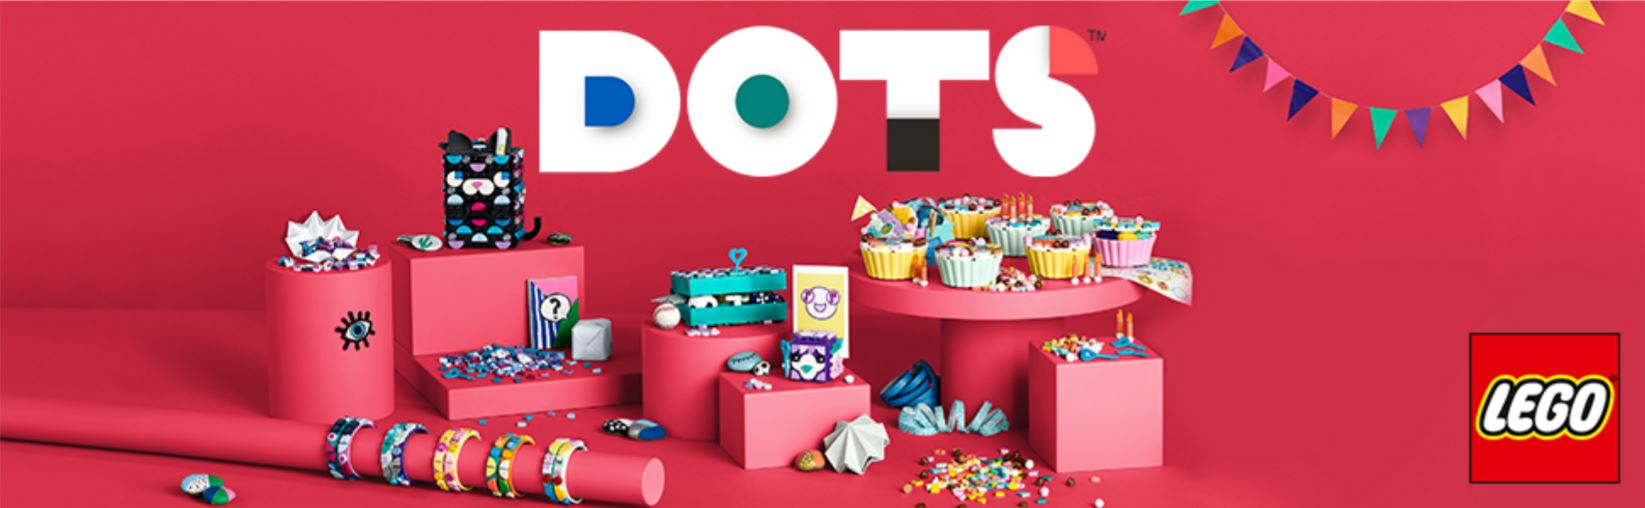 creative dots range